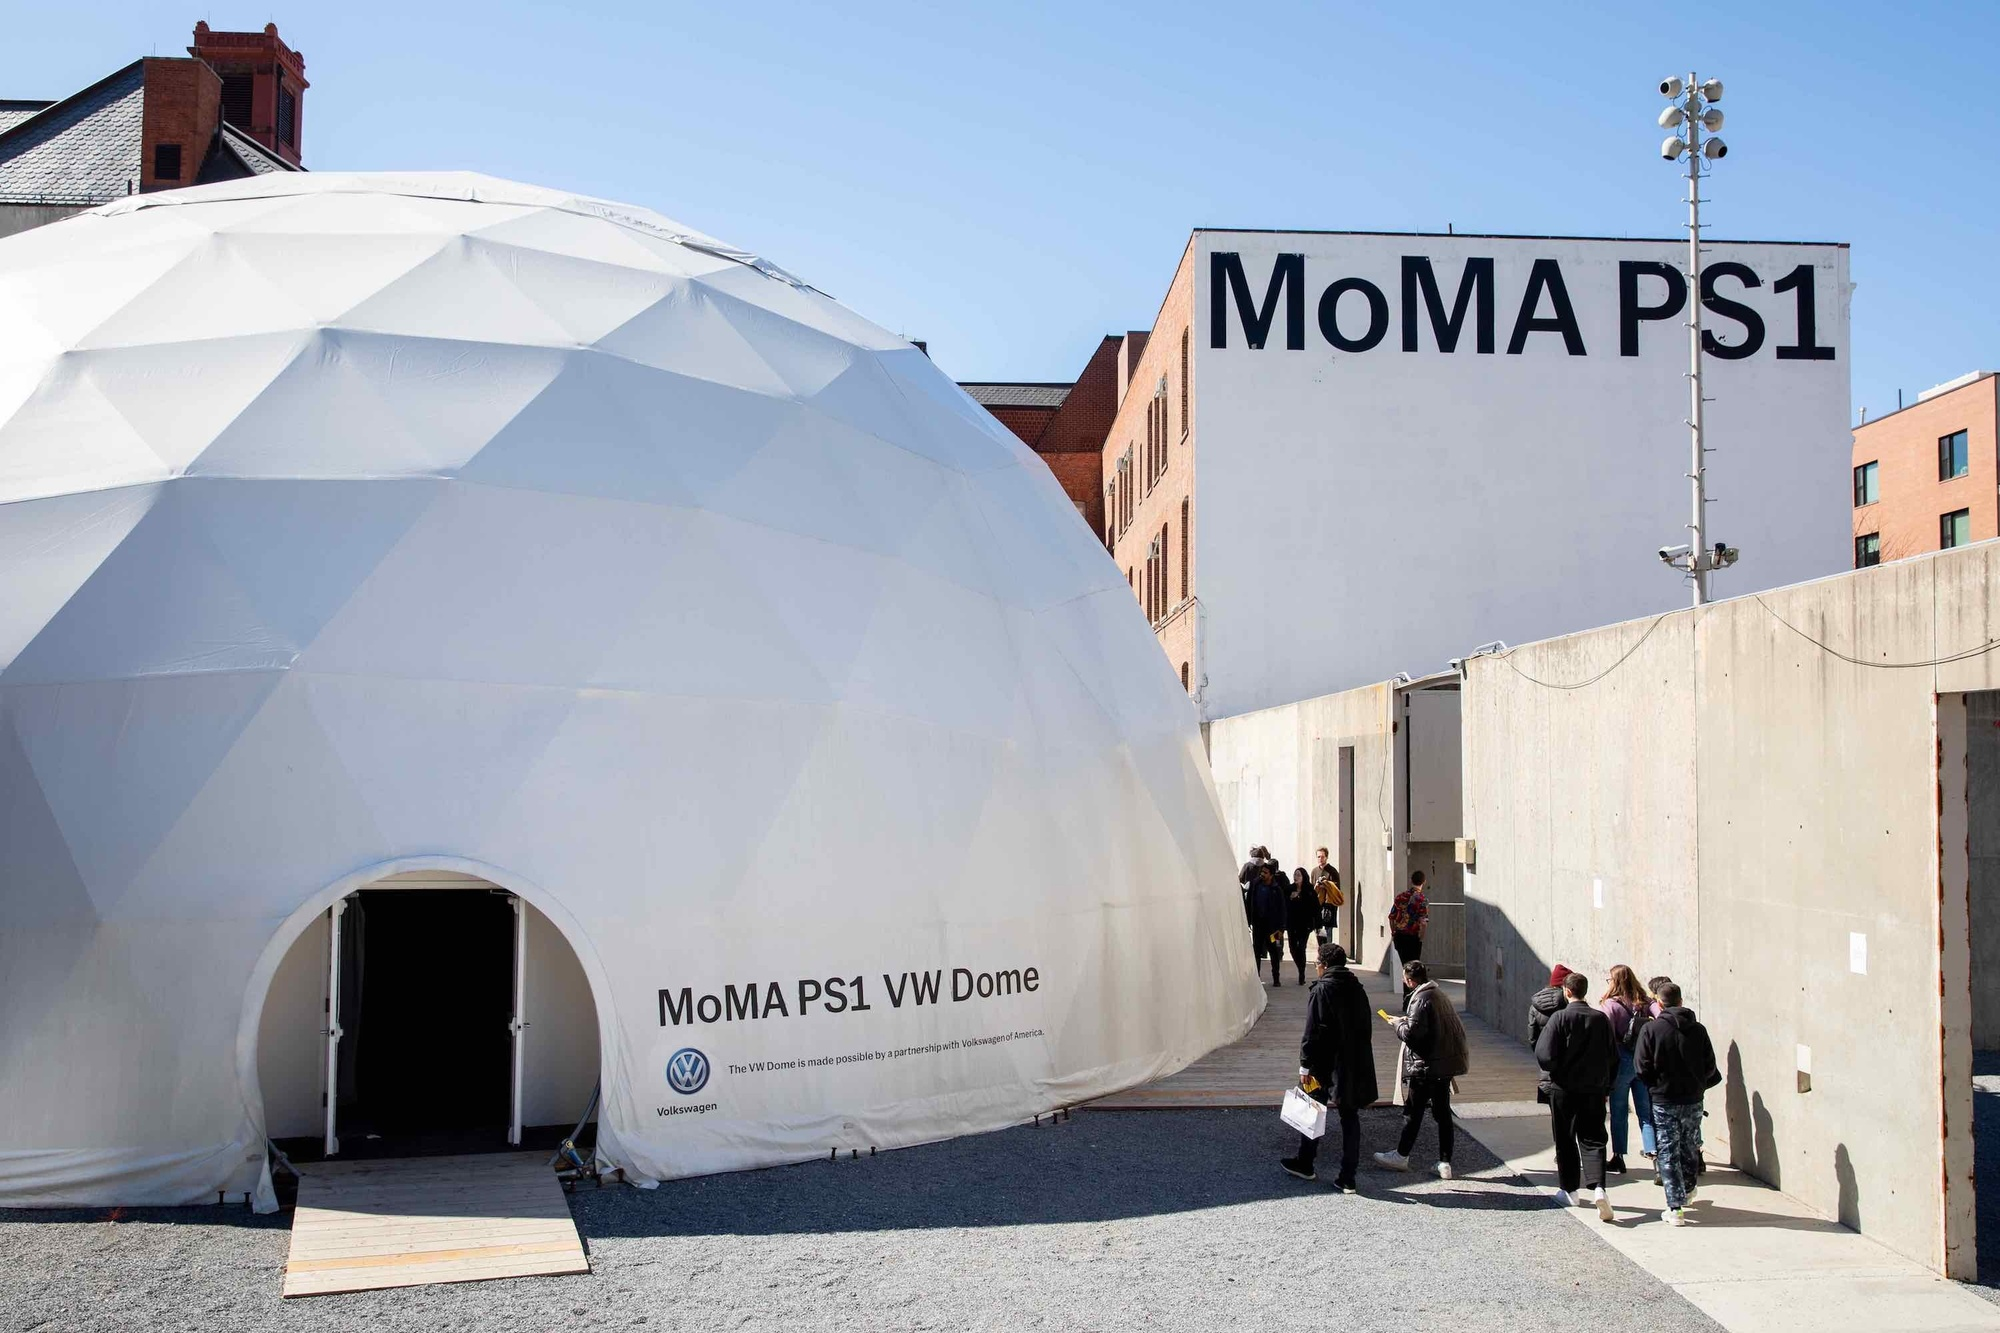 The VW Dome at MoMA PS1, New York City. Photo: Walter Wlodarczyk